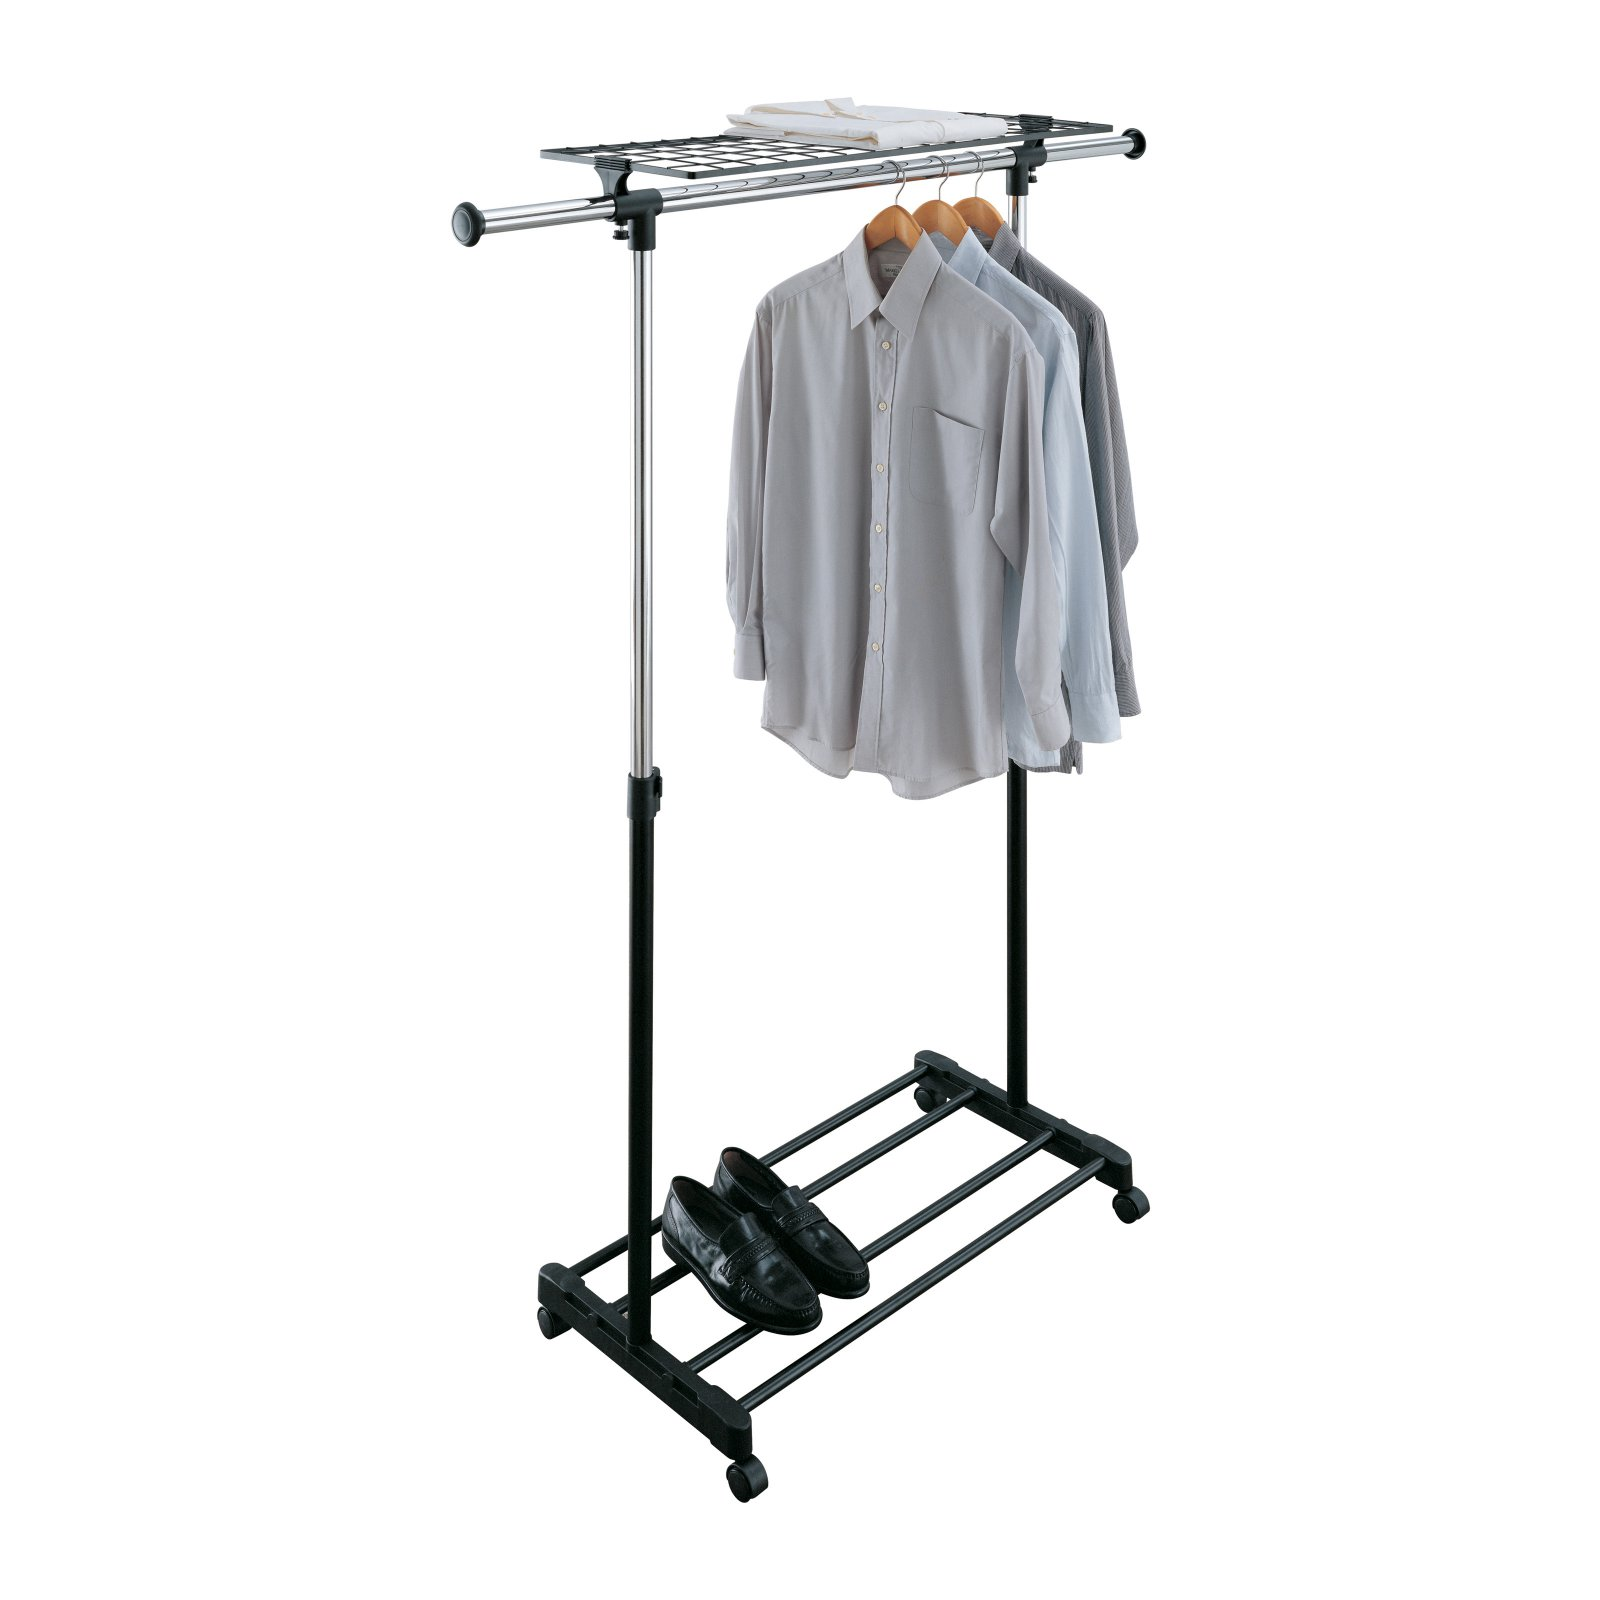 Rolling Tire Storage Rack >> Rolling Adjustable Garment Rack - Walmart.com